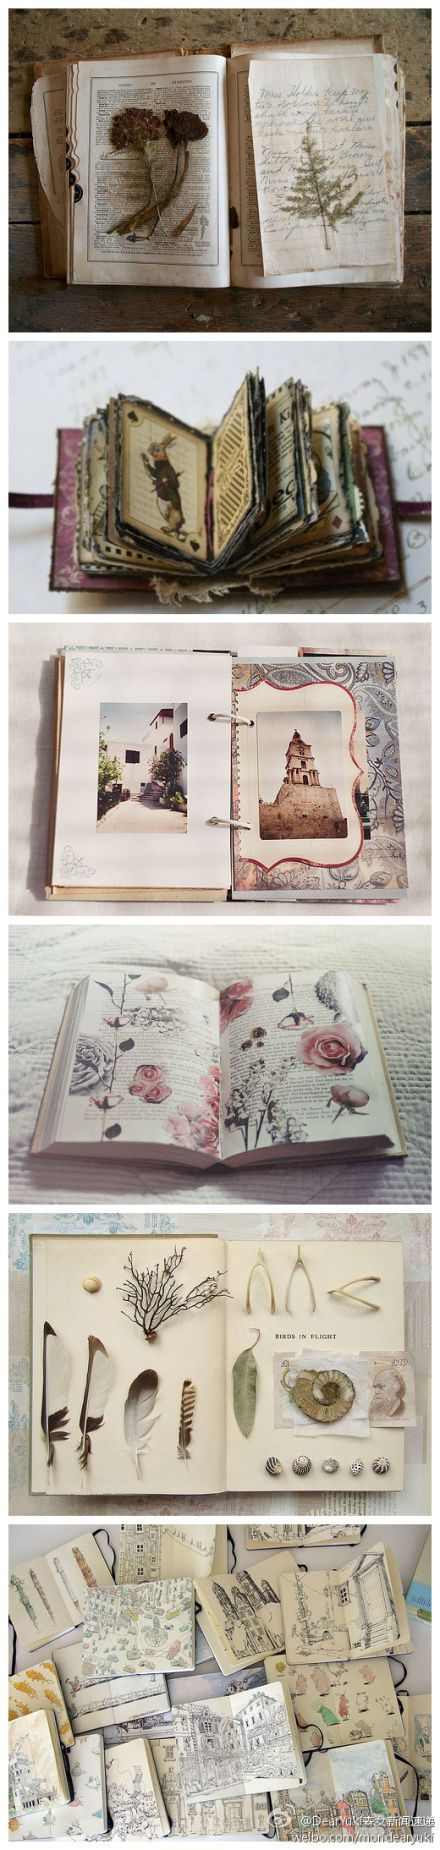 Journals, journals, and more absolutely adorable journals!